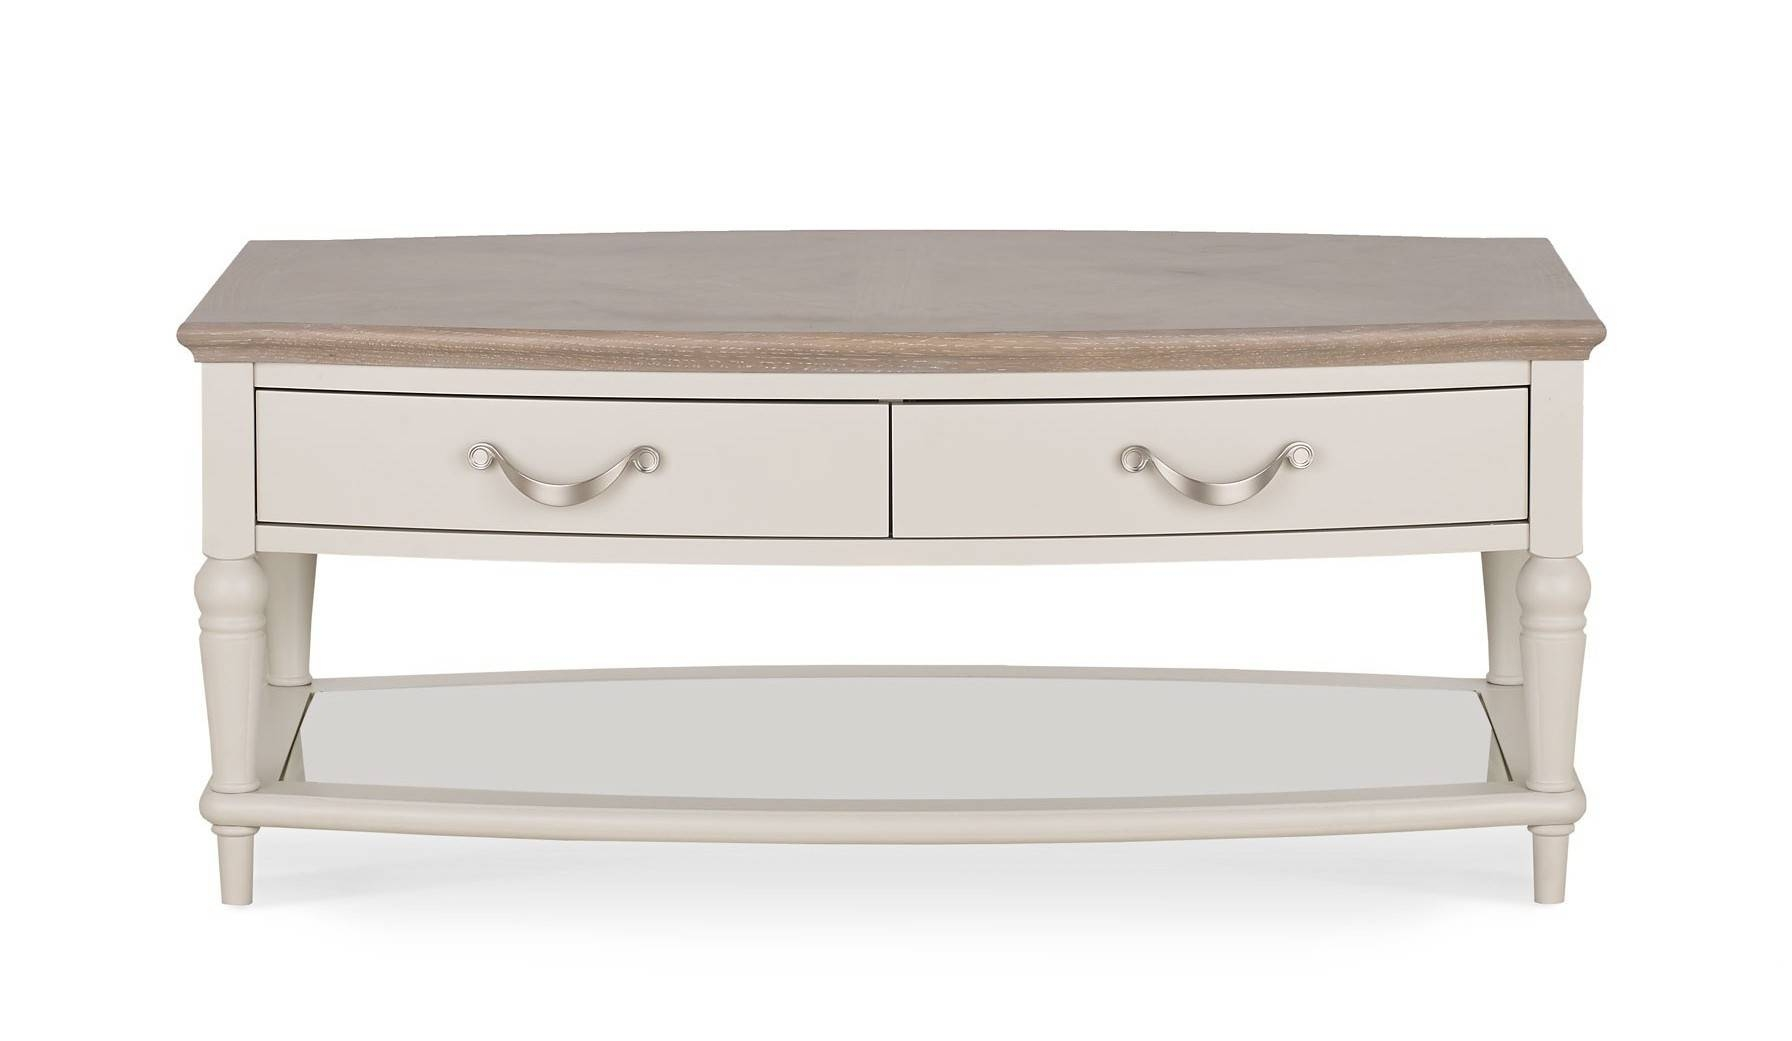 Grey Wash Coffee Table Furniture | Roy Home Design inside Grey Wash Coffee Tables (Image 22 of 30)